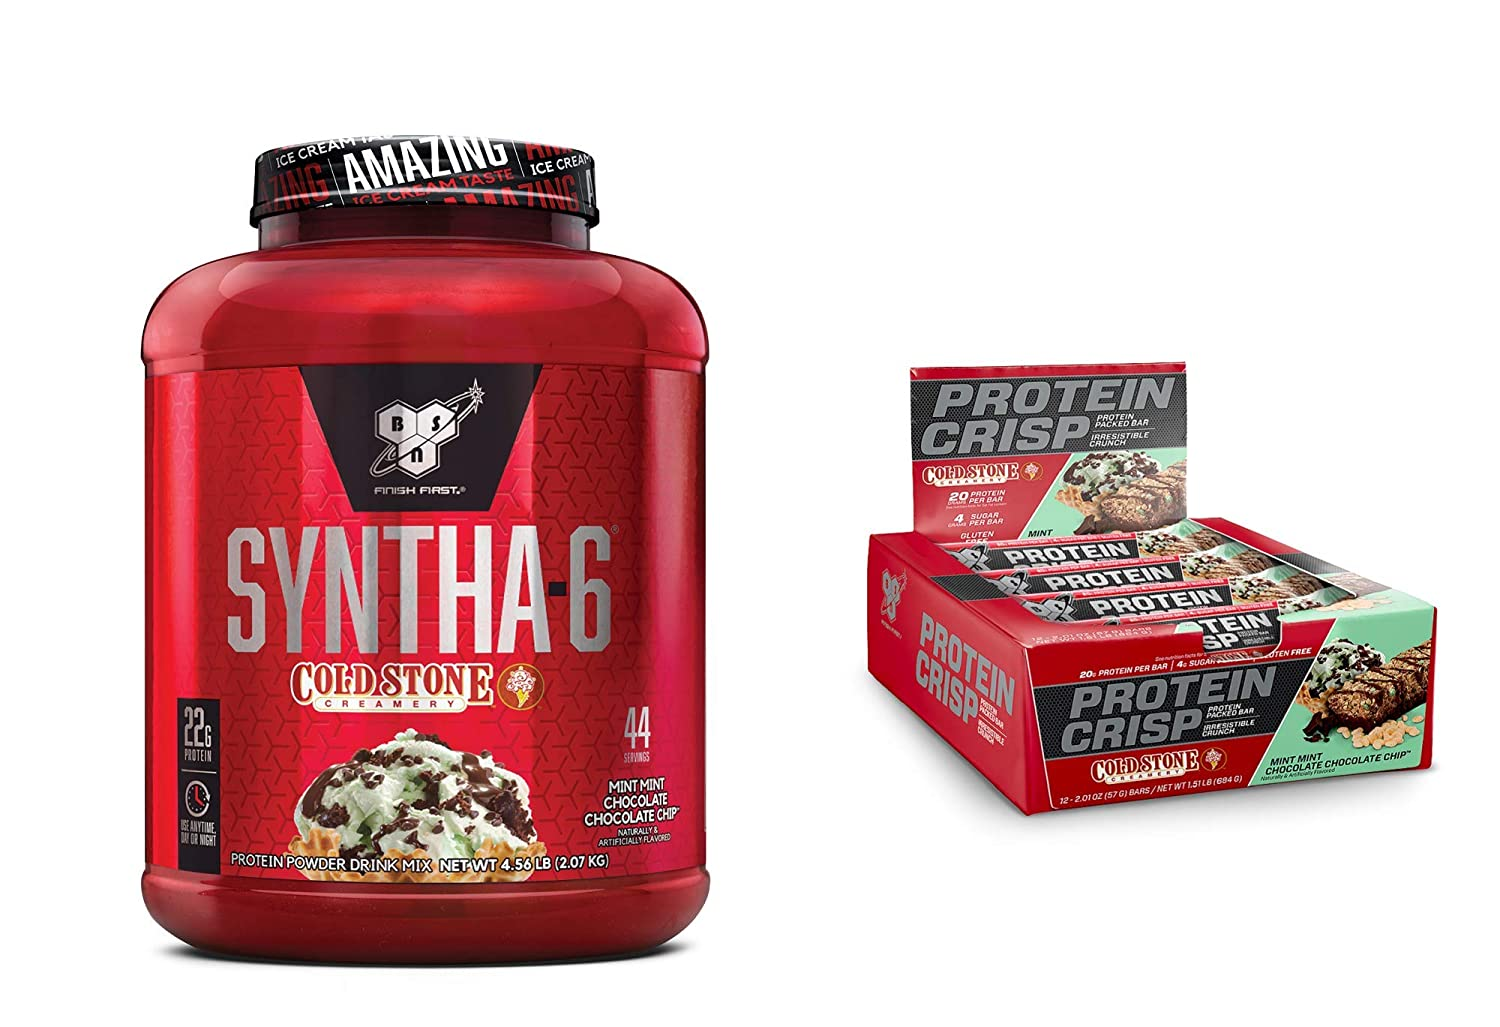 BSN Syntha-6 Whey Protein Powder, Mint Mint Chocolate Chocolate Cake Flavor 44 Servings with BSN Protein Crisp Bar, Mint Mint Chocolate Chip-Low Sugar Whey Protein Bar, 20g of Protein 12 Count